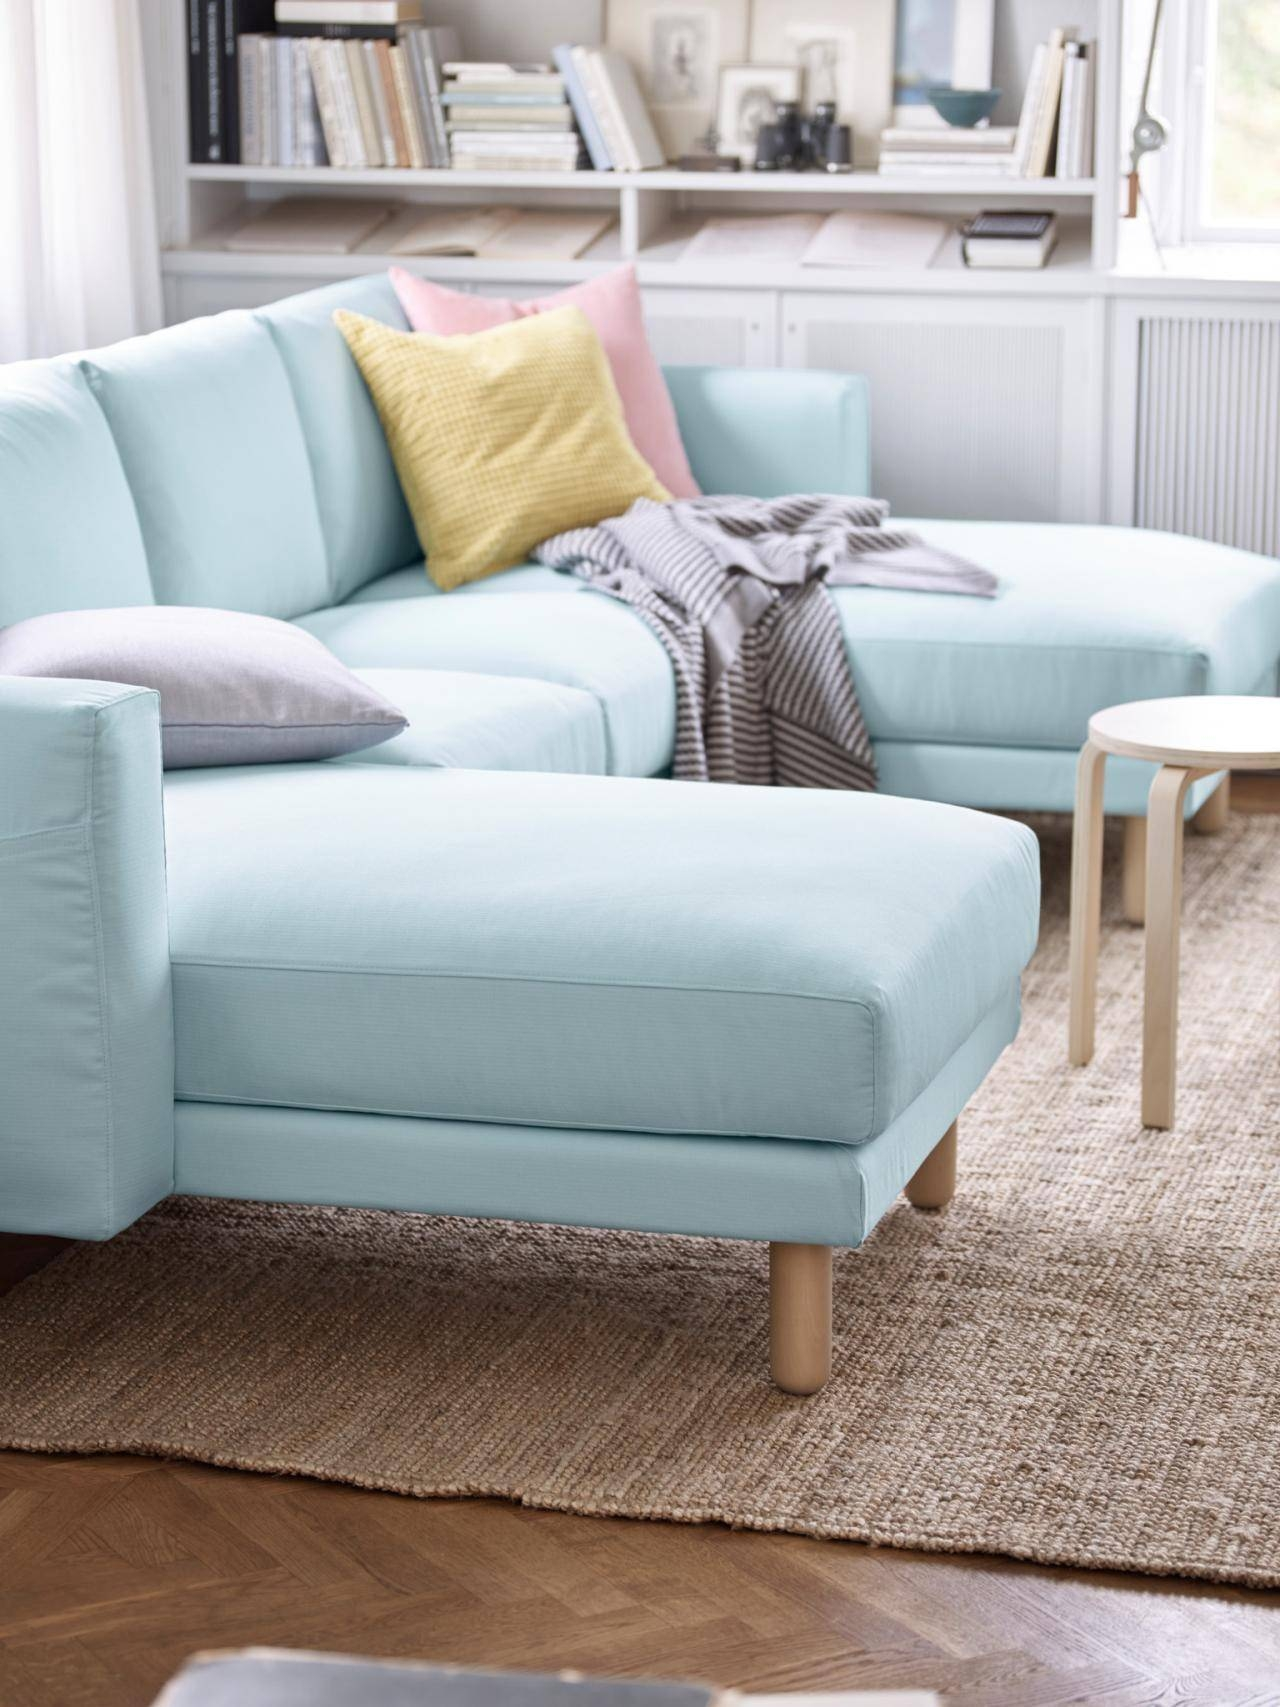 5 Apartment Sized Sofas That Are Lifesavers | Hgtv's Decorating in 68 Inch Sofas (Image 1 of 30)